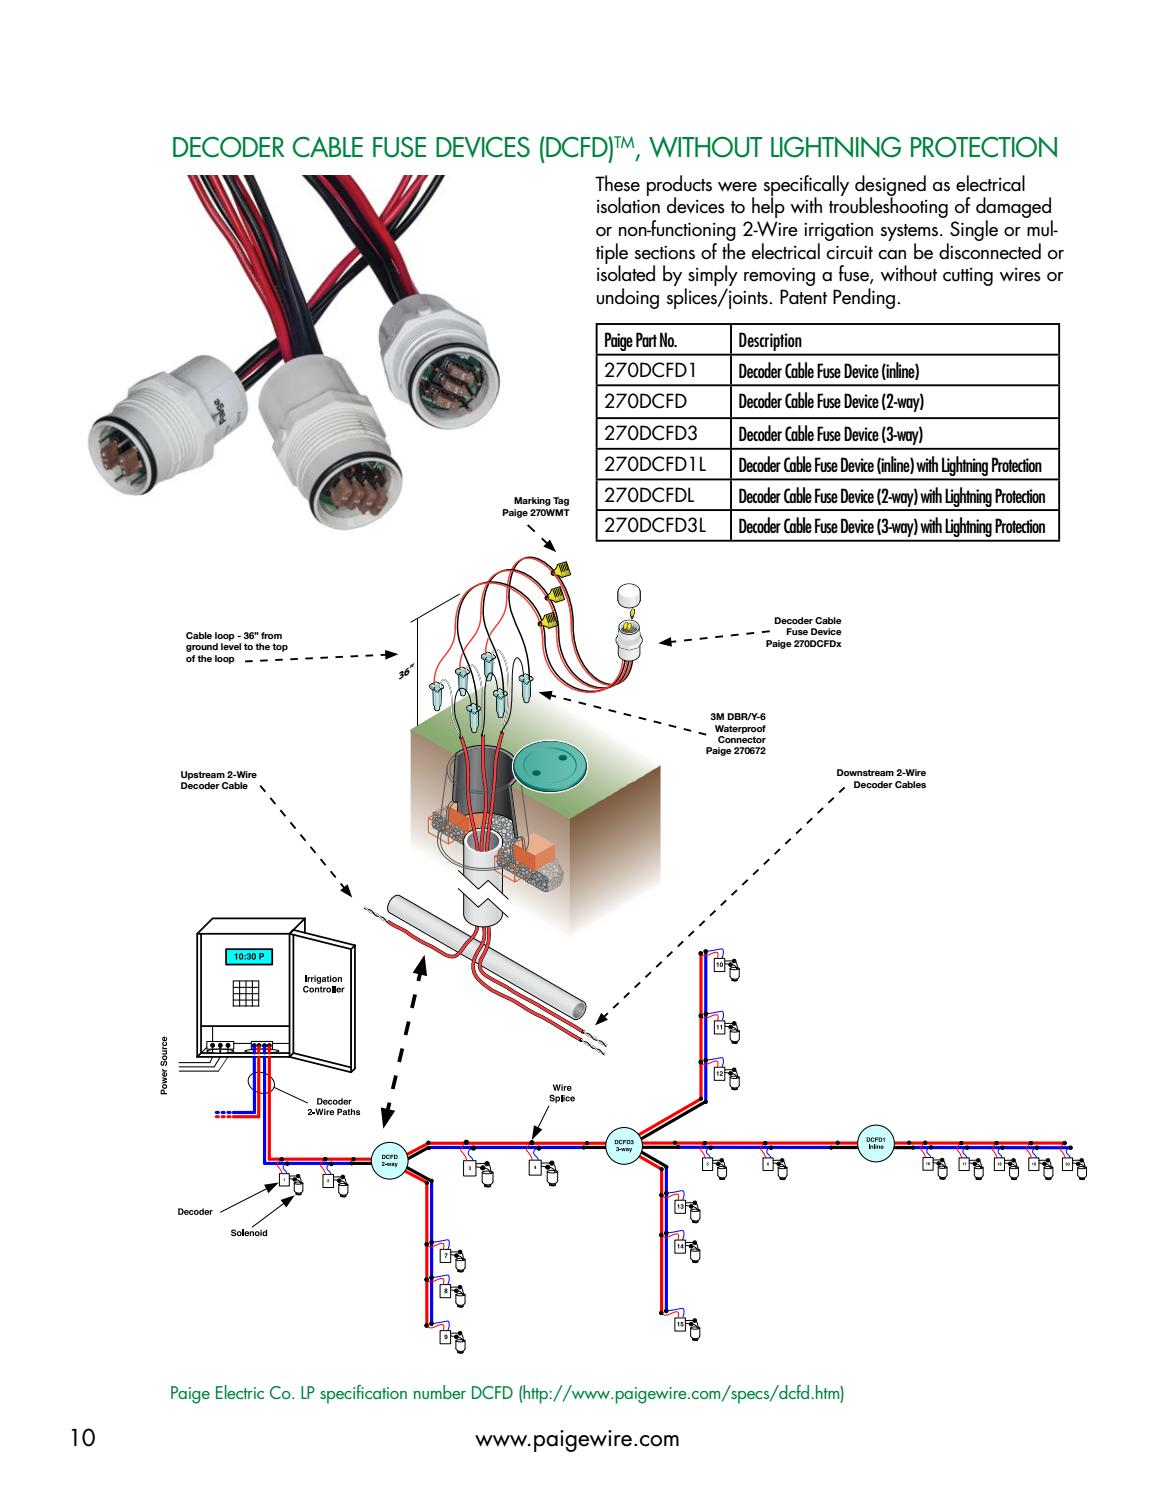 Paige Irrigation Catalog & Wiring Guide by VITinc - issuu